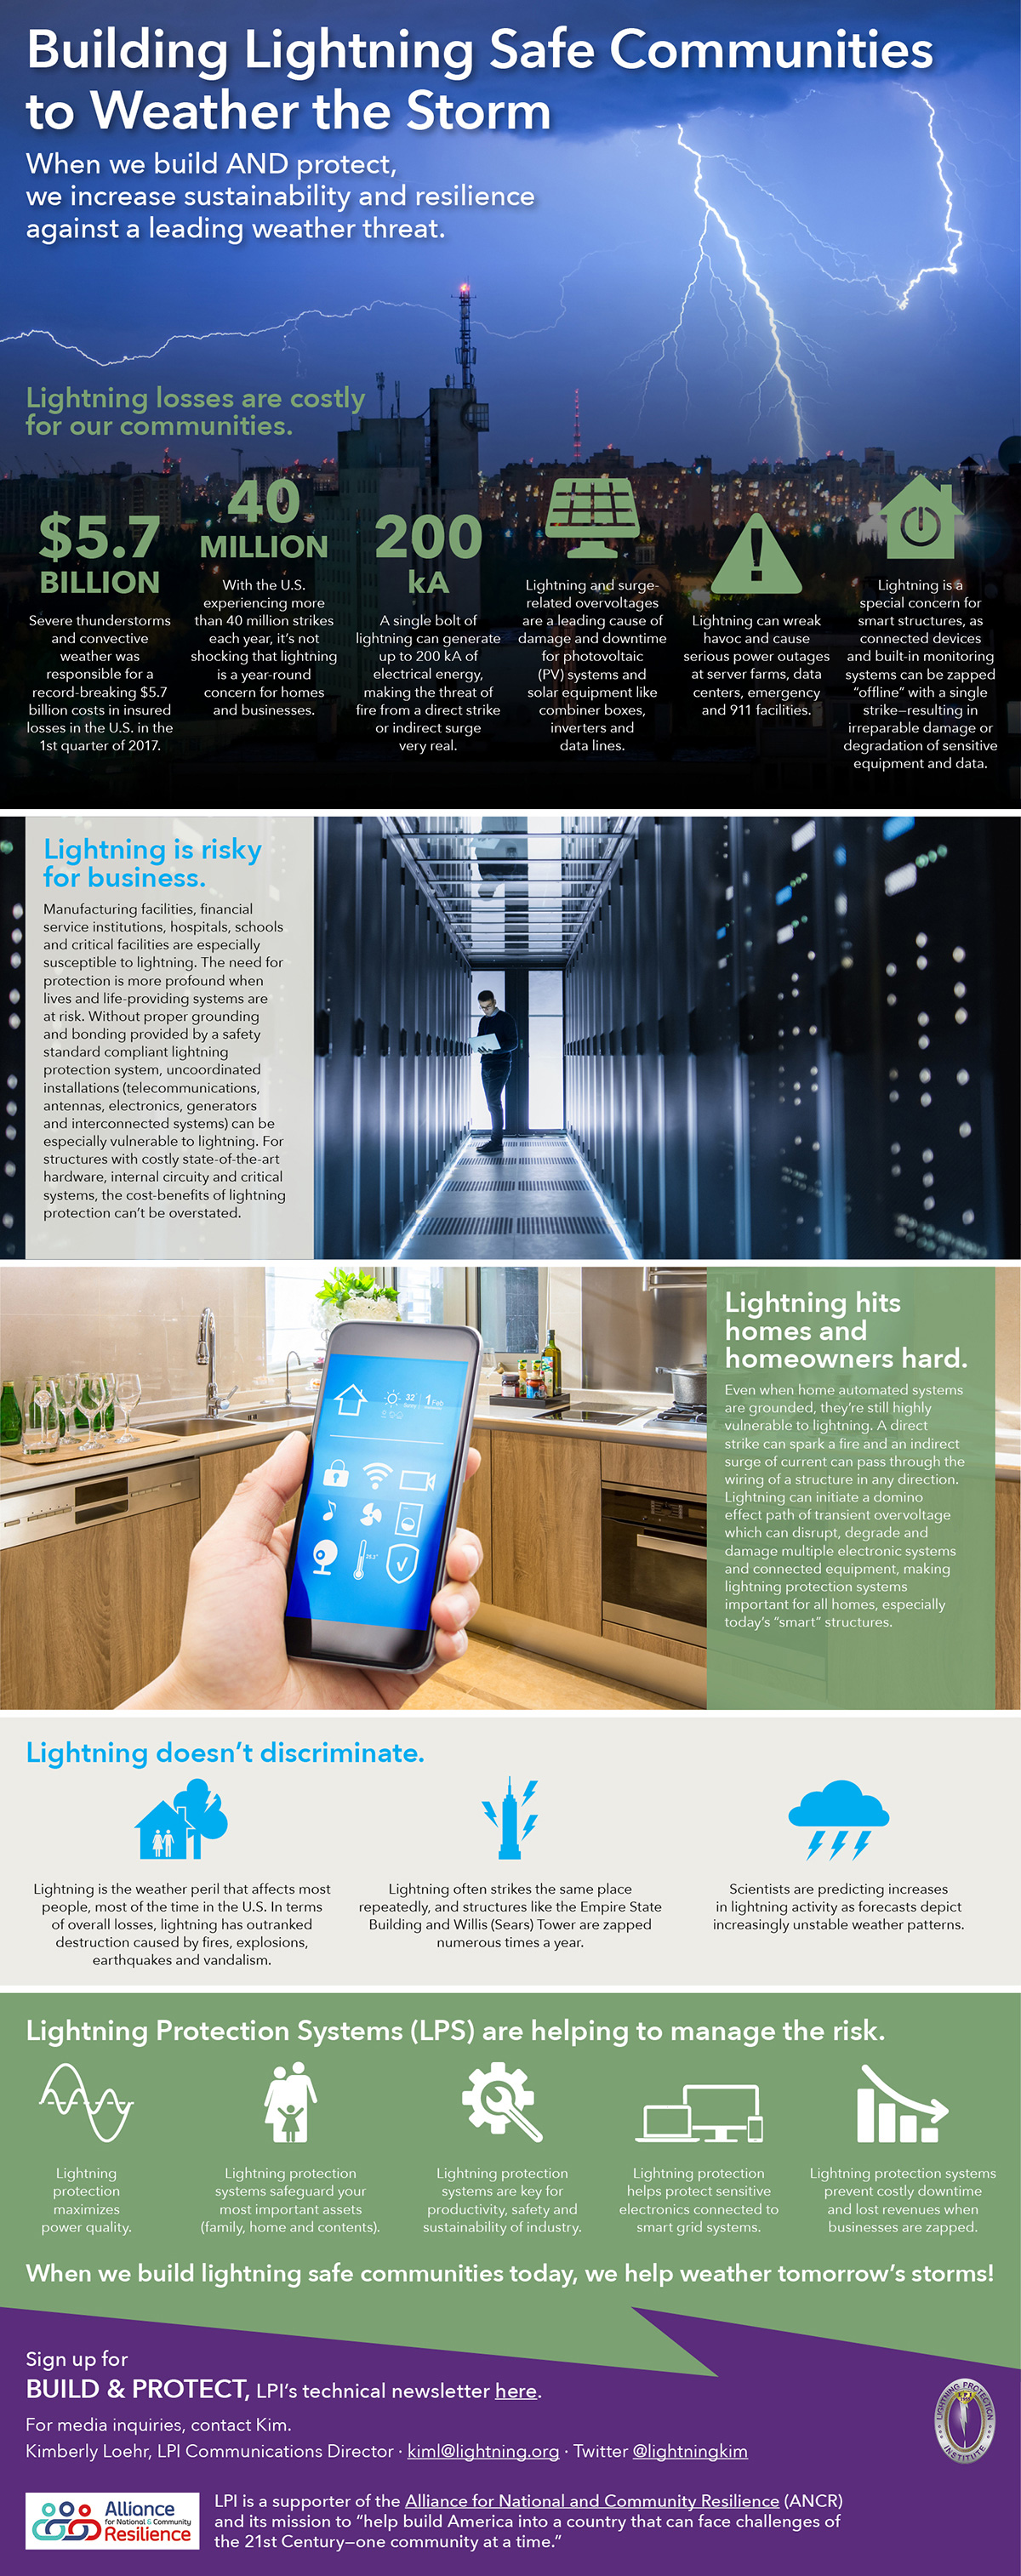 News Lightning Protection Institute Page 2 Wiring Products Help Ensure That Your Home Will Be Ready For The How Systems Can Improve Sustainability Increase Resilience Against A Leading Weather Threat